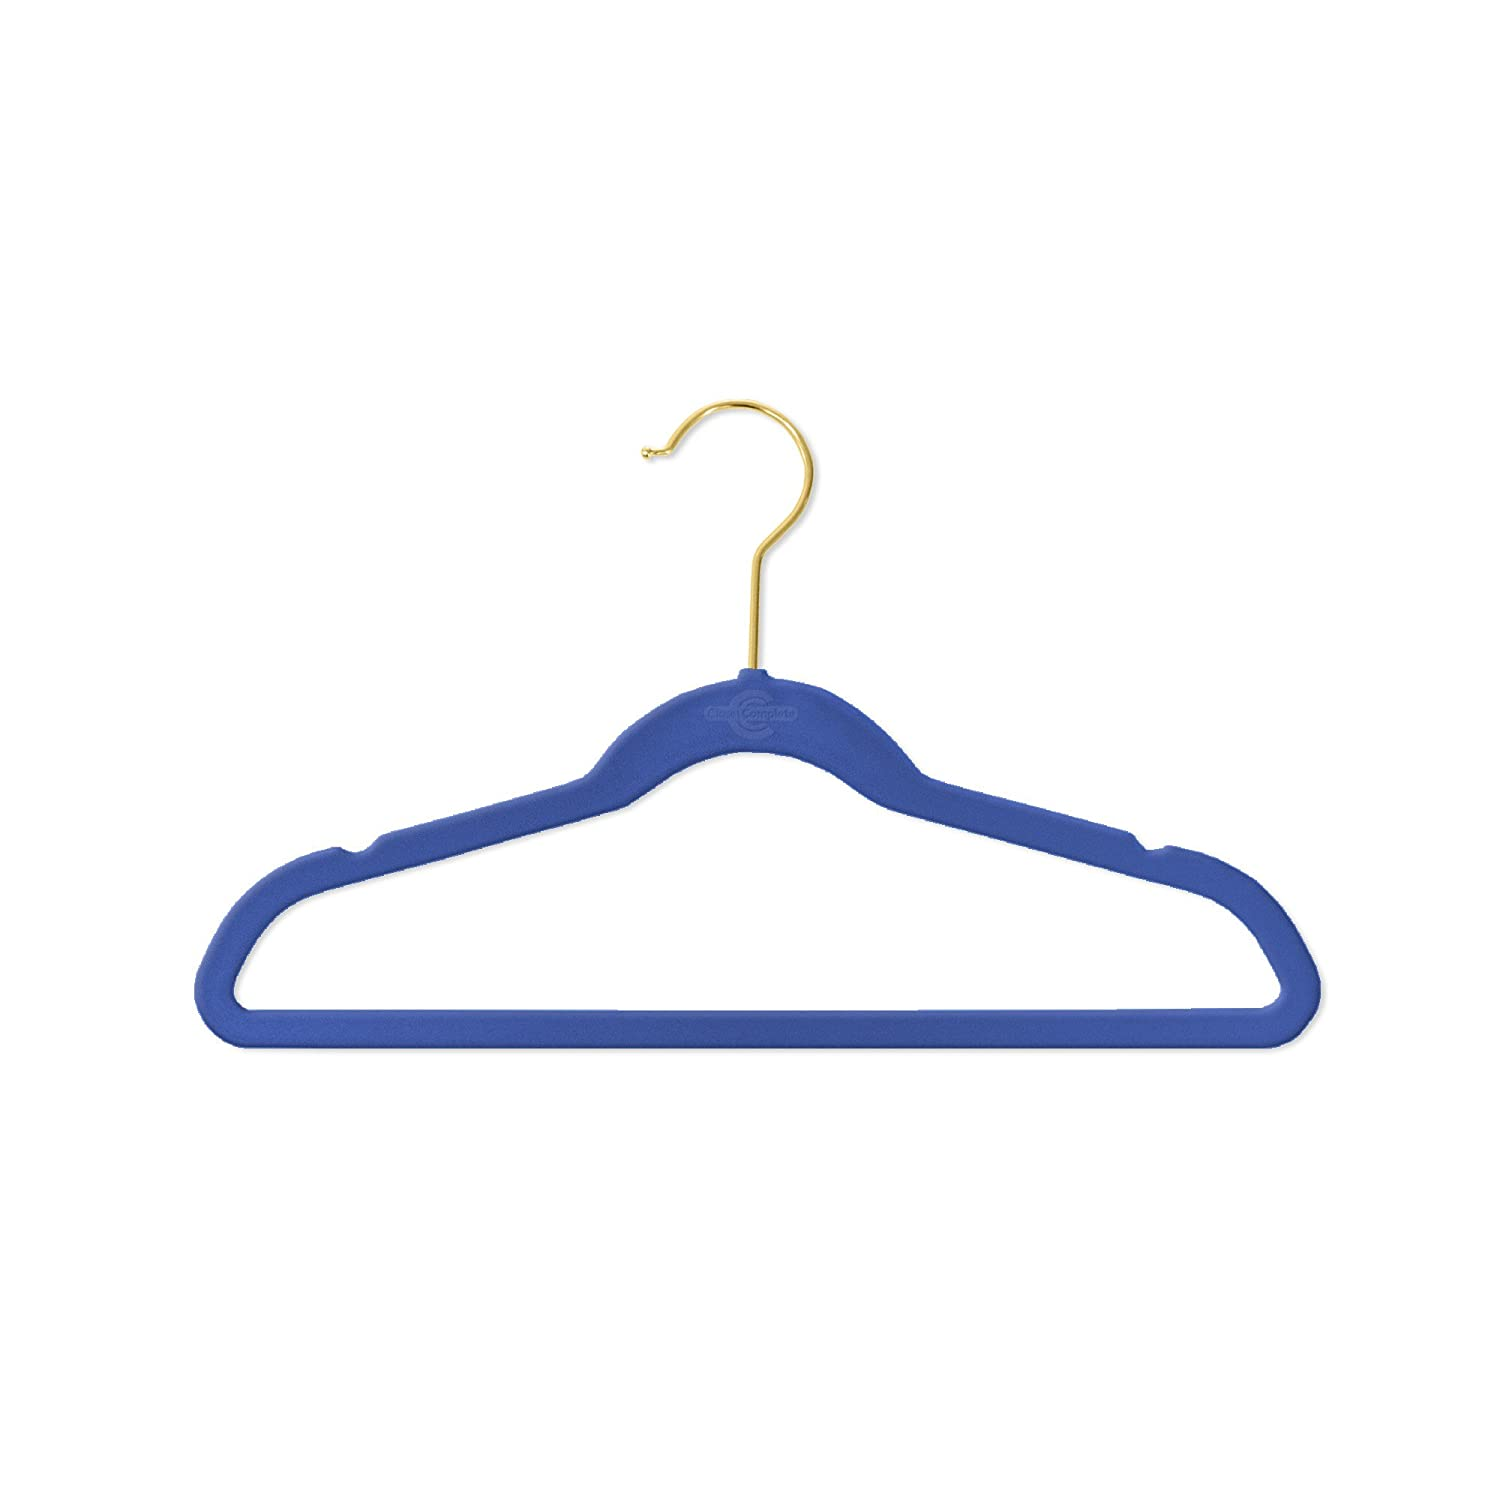 360/º Spin Ultra-Thin Velvet Hangers No-Slip Set of 25 Ivory Premium Heavyweight Virtually-Unbreakable Closet Complete Kids Size Perfectly Sized for Kids 4-15 Years Space Saving